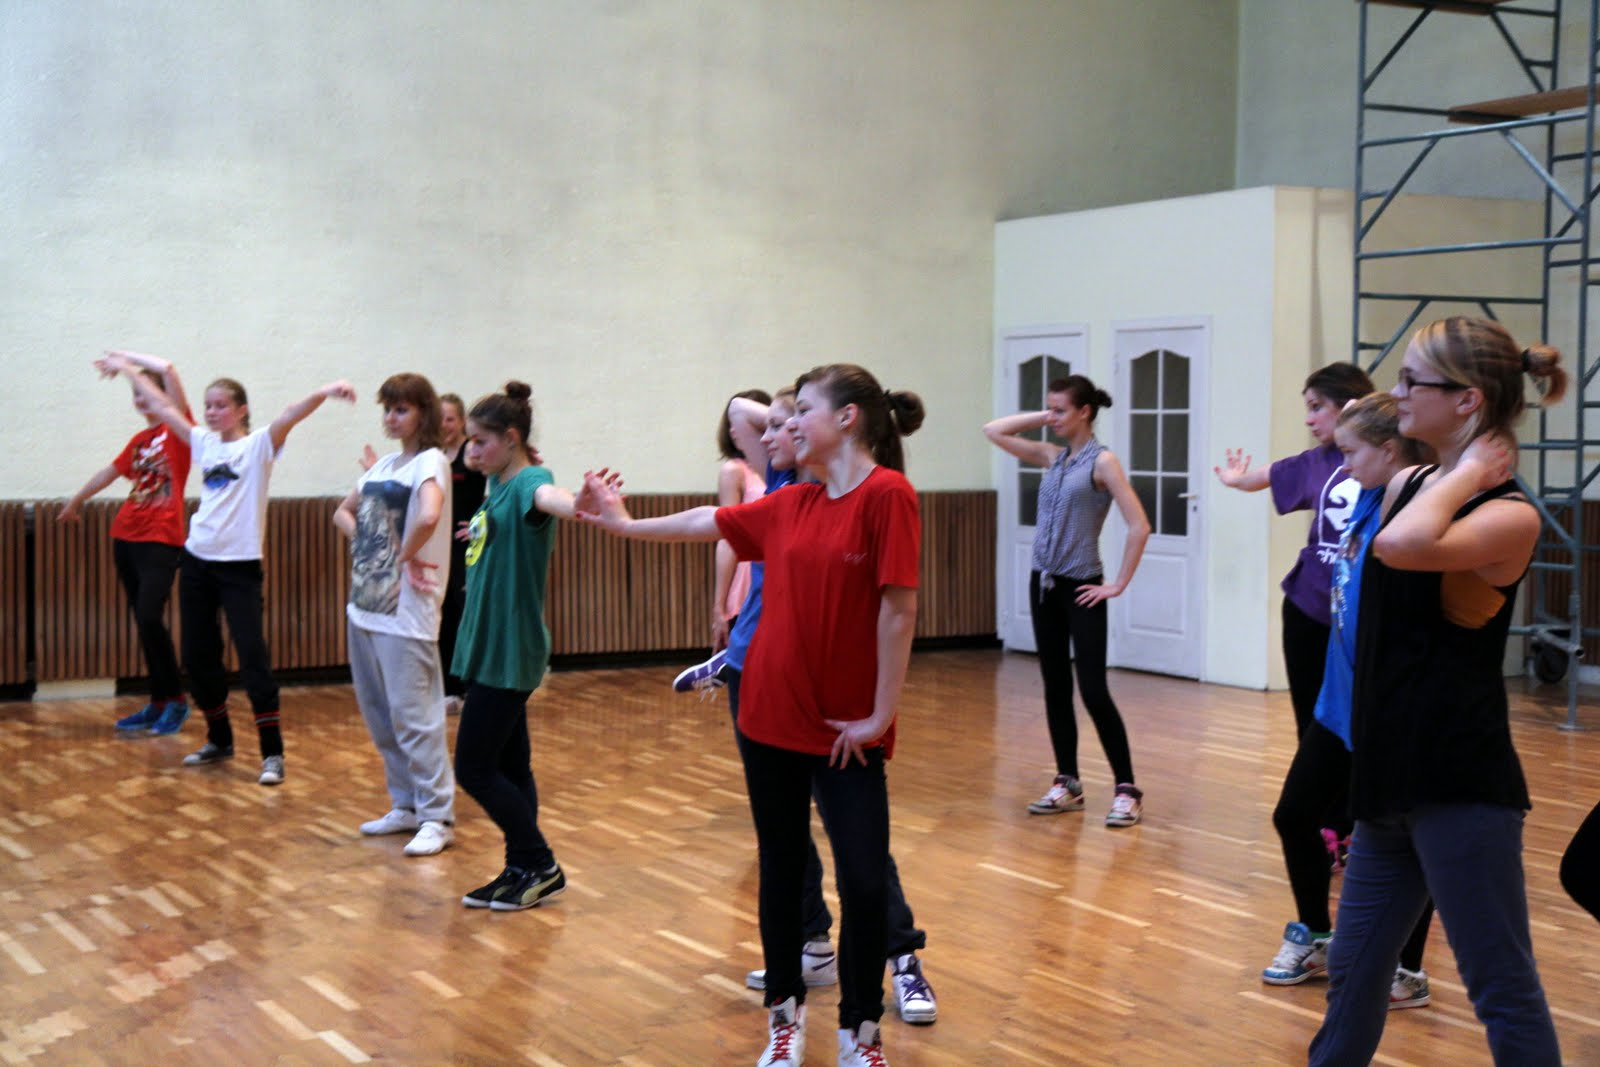 Waacking workshop with Nastya (LV) - IMG_2053.JPG